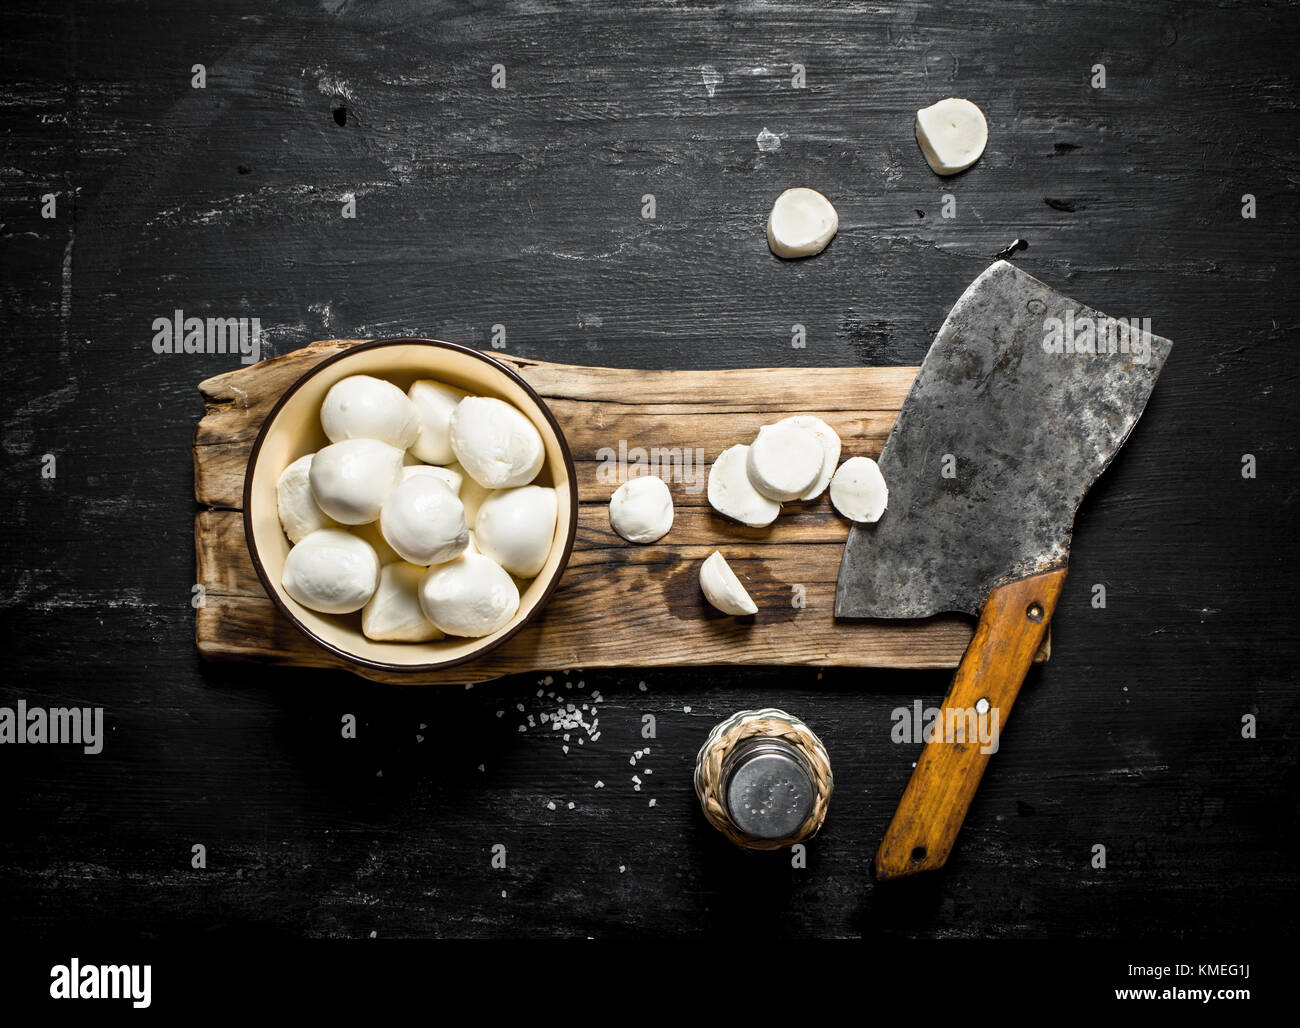 Fresh mozzarella with a hatchet for cutting. On a black wooden background. - Stock Image